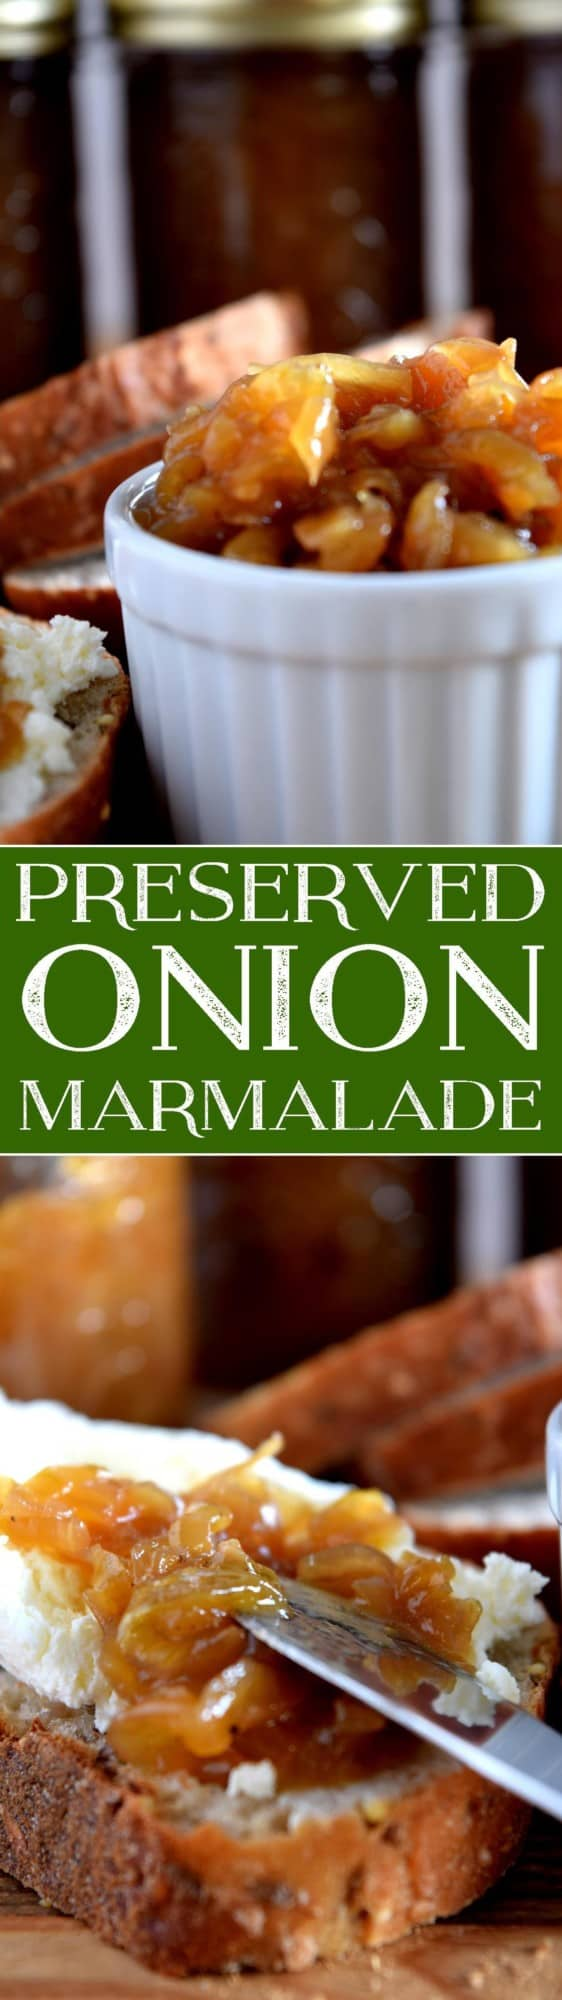 preserved-onion-marmalade